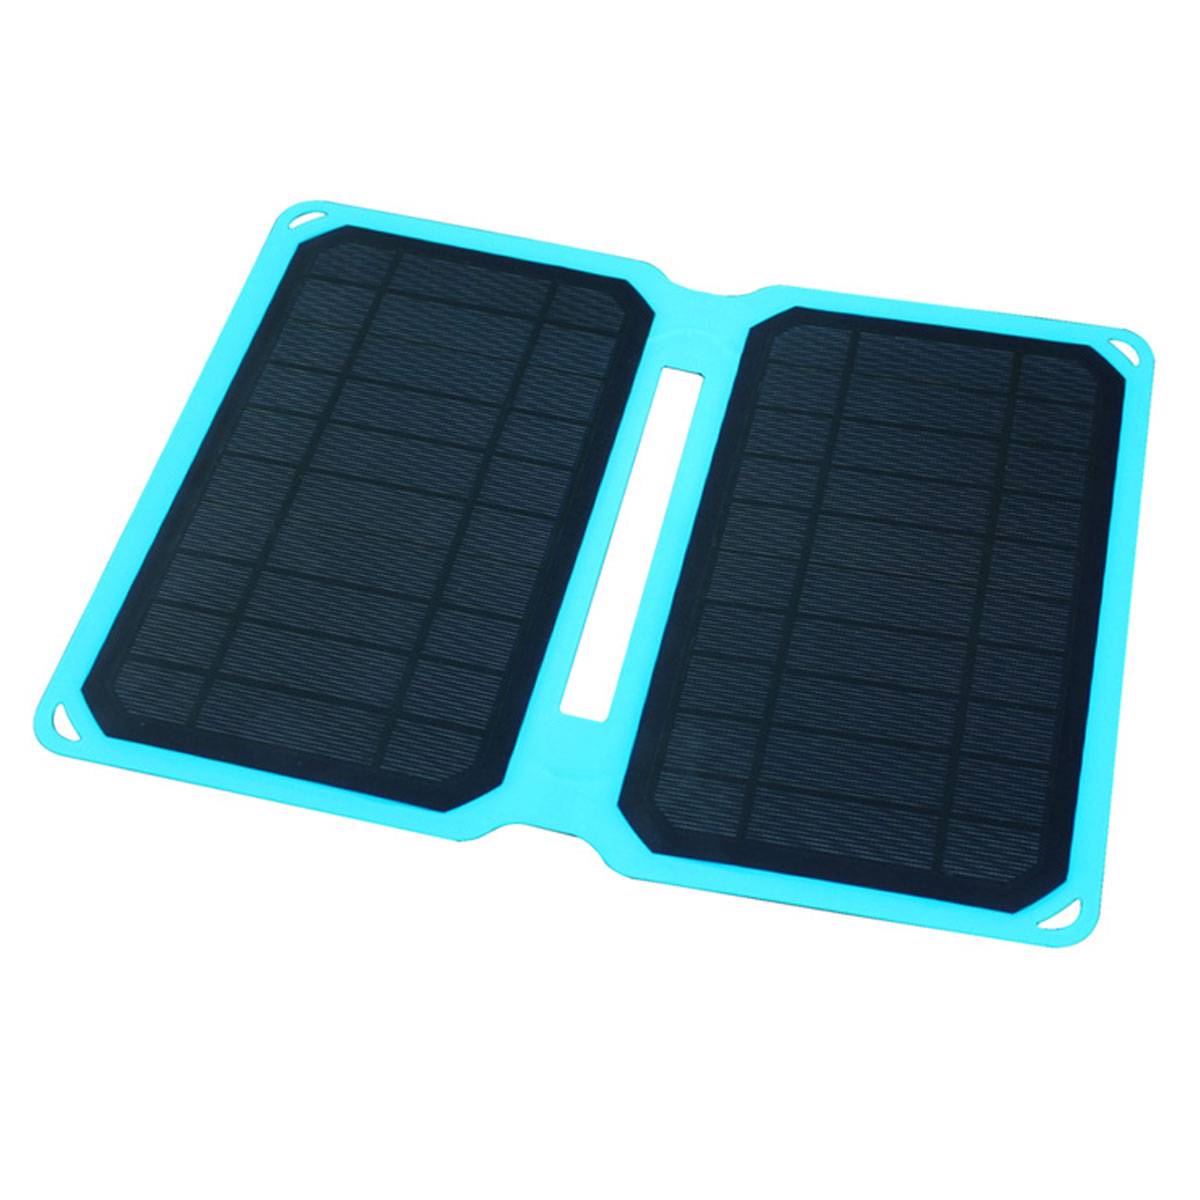 Solar Charger 10W Solar Panel With Usb Port Waterproof Foldable Camping Travel Charger Compatible For Iphone Ipad, Galaxy , NoSolar Charger 10W Solar Panel With Usb Port Waterproof Foldable Camping Travel Charger Compatible For Iphone Ipad, Galaxy , No